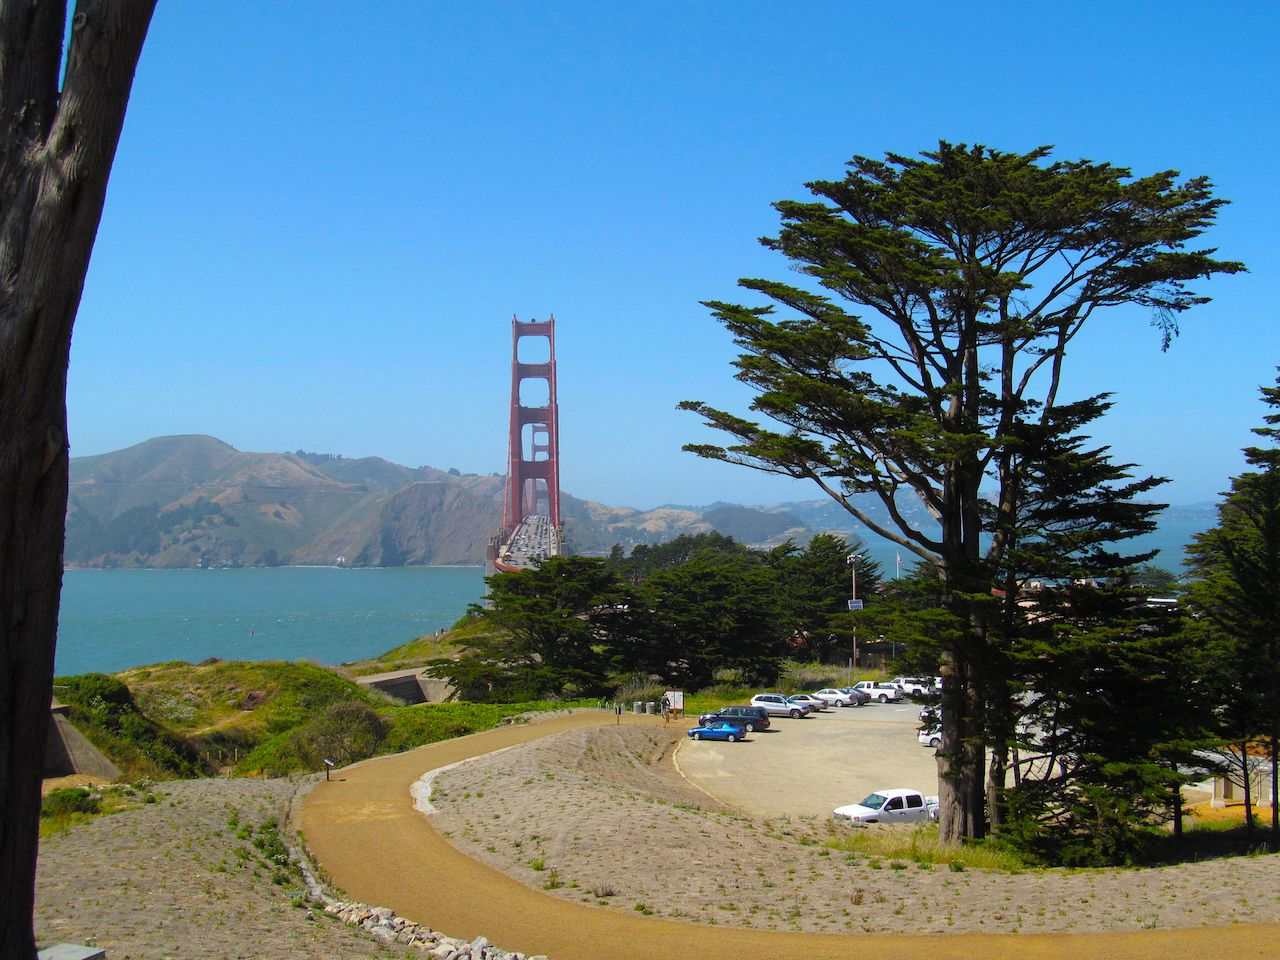 Dating in San Francisco? Here's where you should go to have the best time